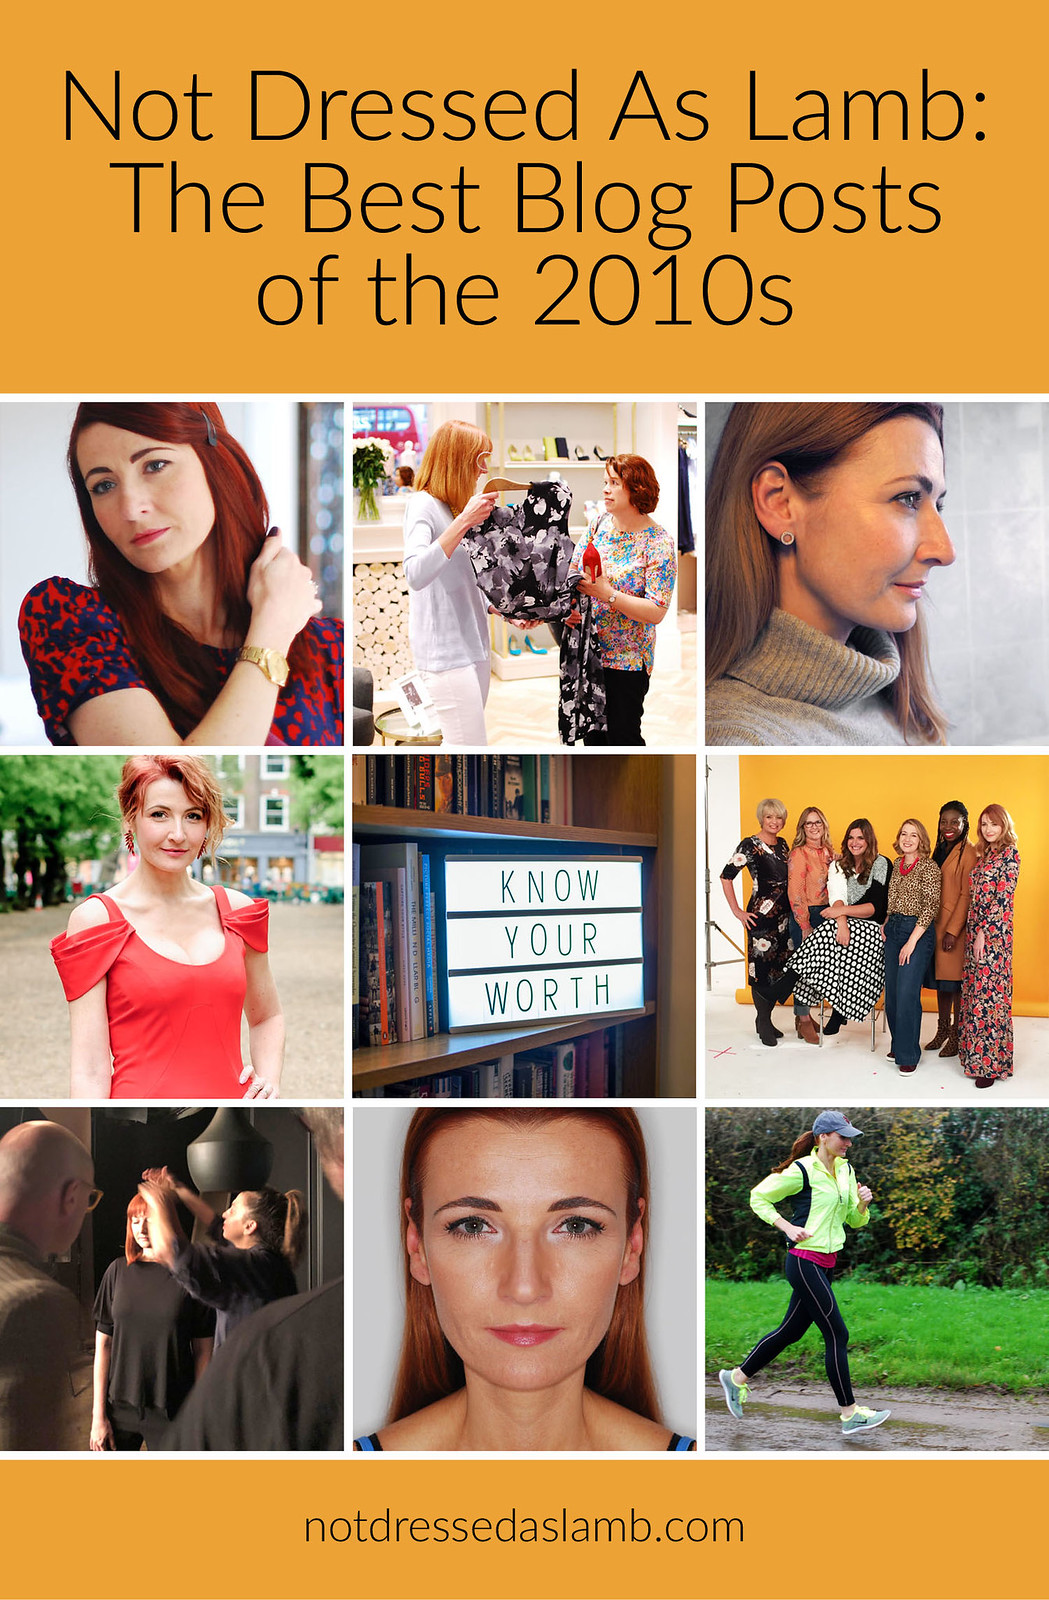 Not Dressed As Lamb: The Best Blog Posts of the 2010s